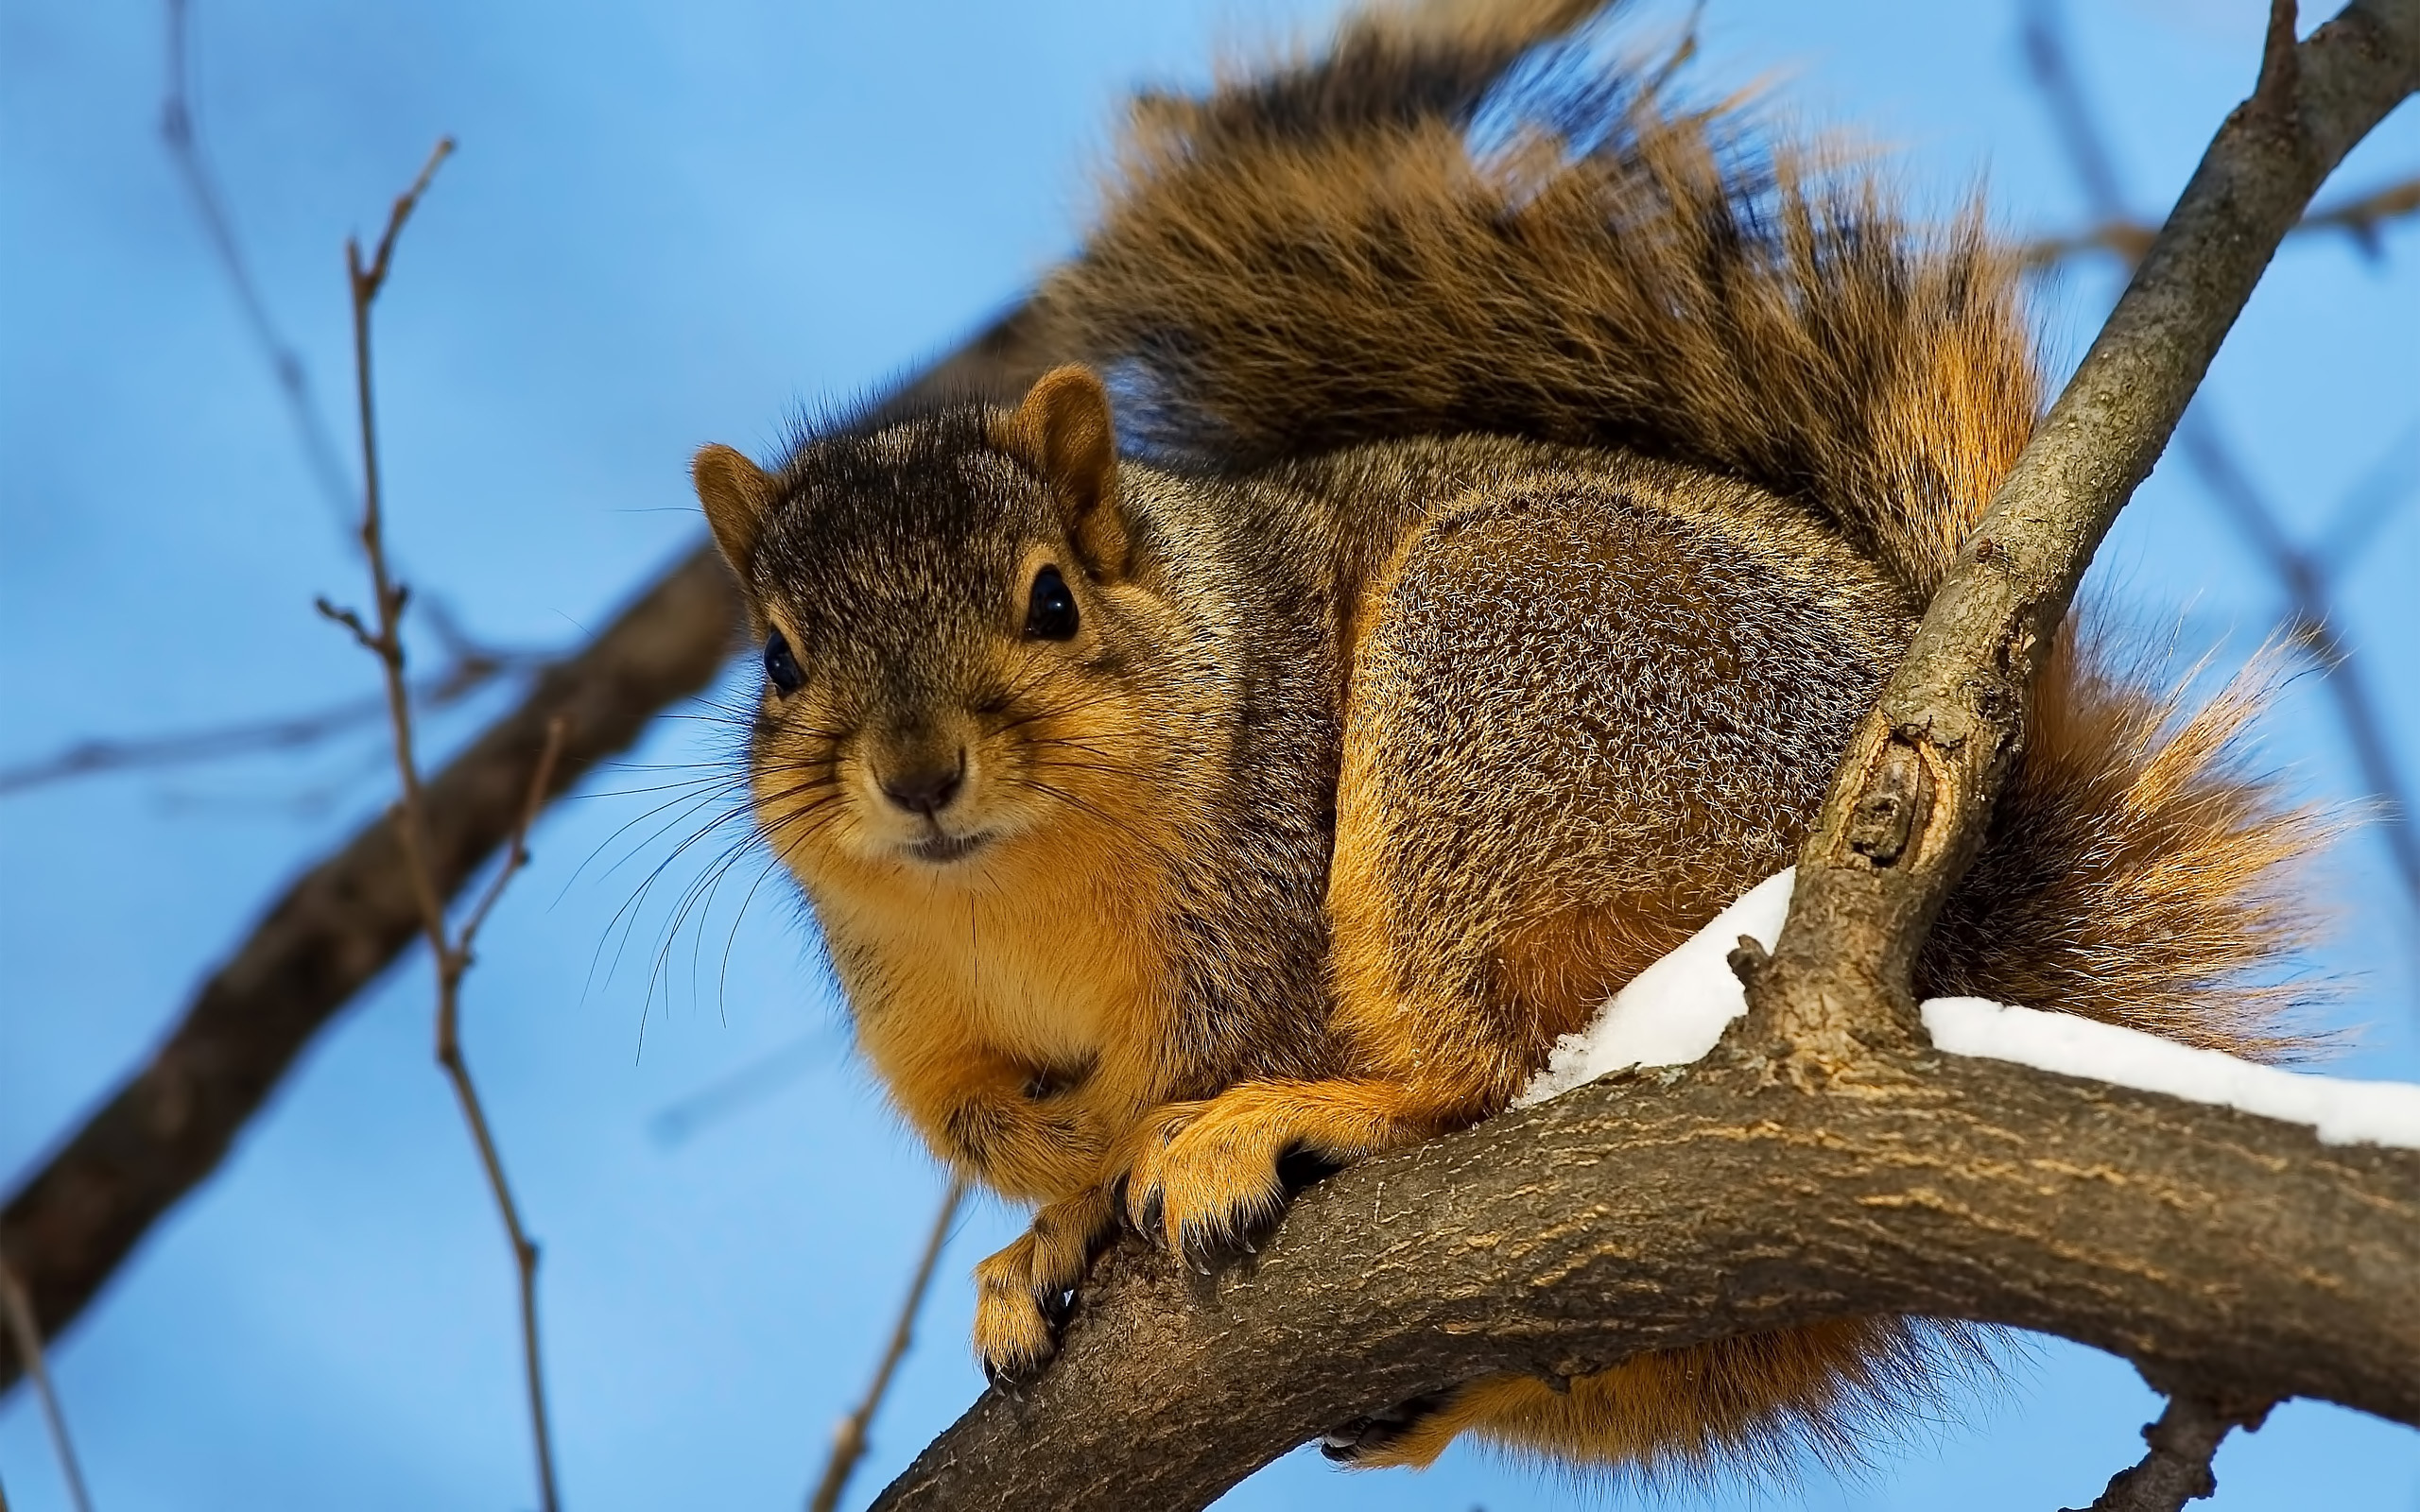 35667 download wallpaper Animals, Squirrel screensavers and pictures for free